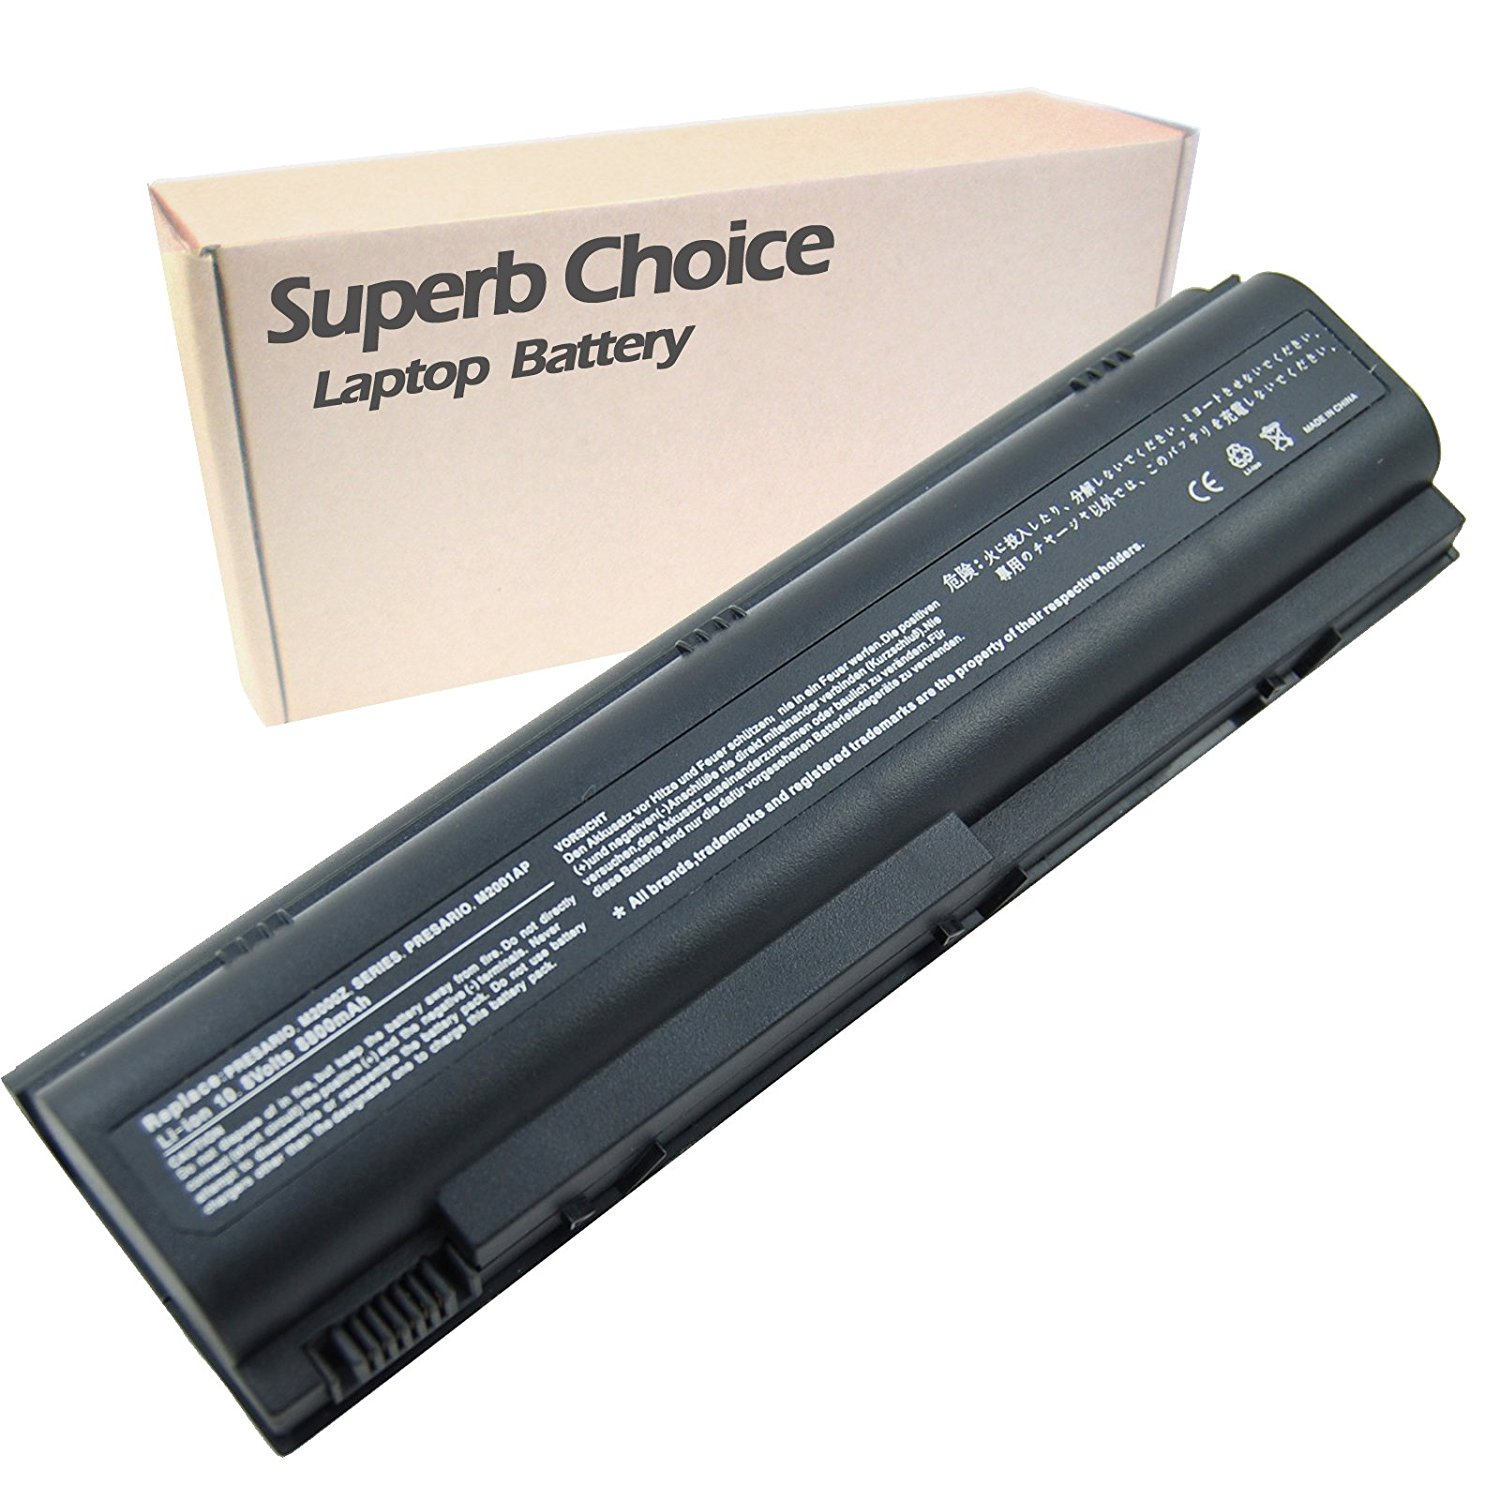 HP Pavilion dv4272us Laptop Battery - Premium Superb Choice® 12-Cell Li-ion Battery